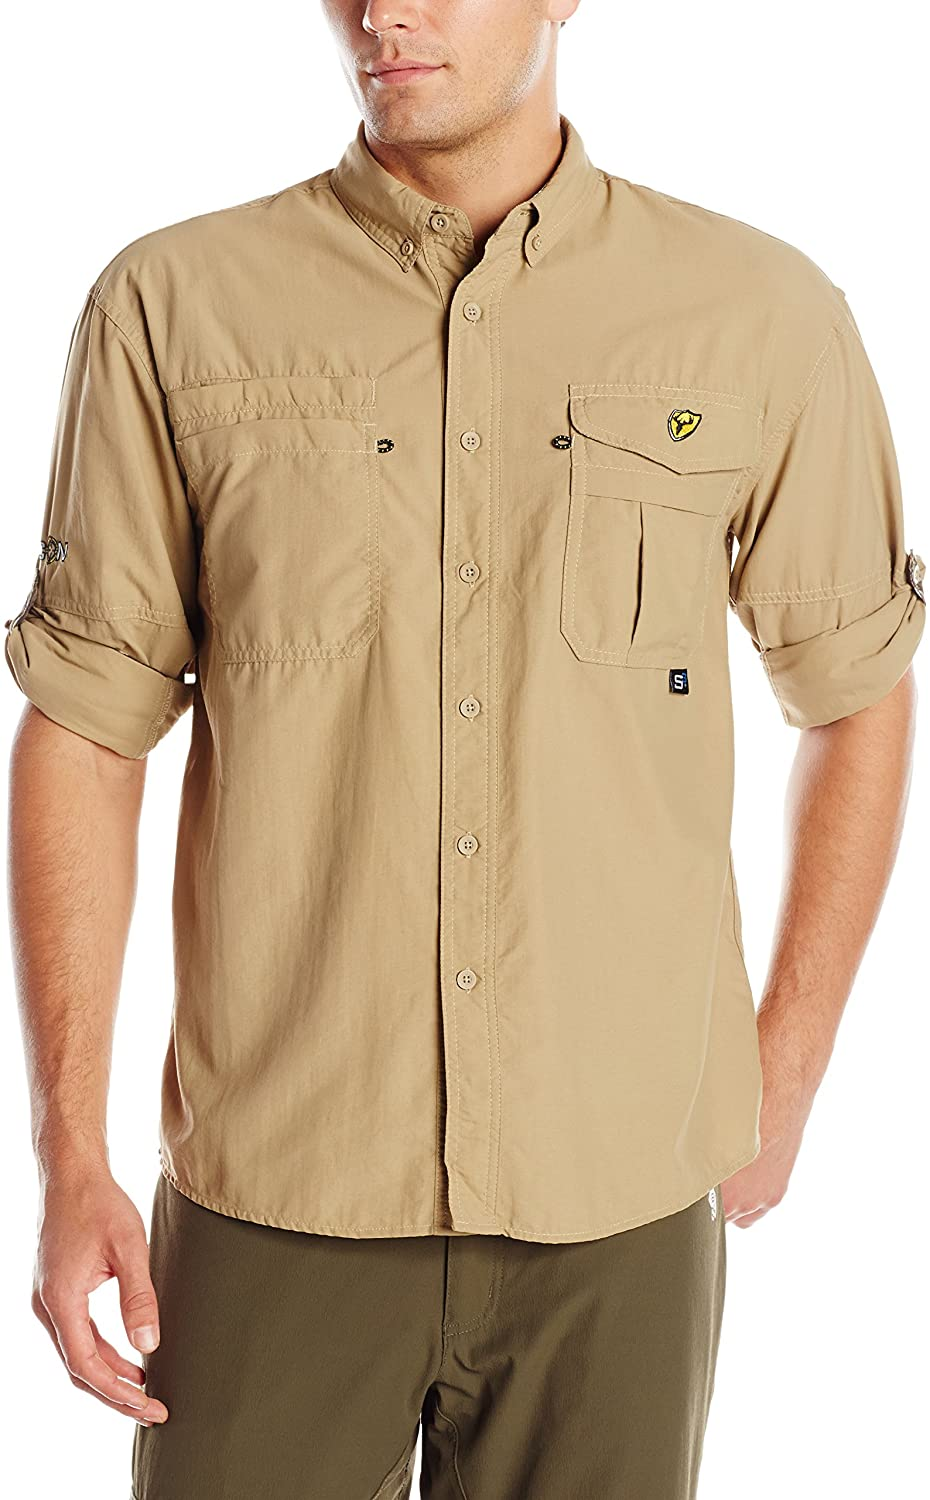 SCENT SHIELD Recon Men's Lifestyle Long Sleeve Shirt